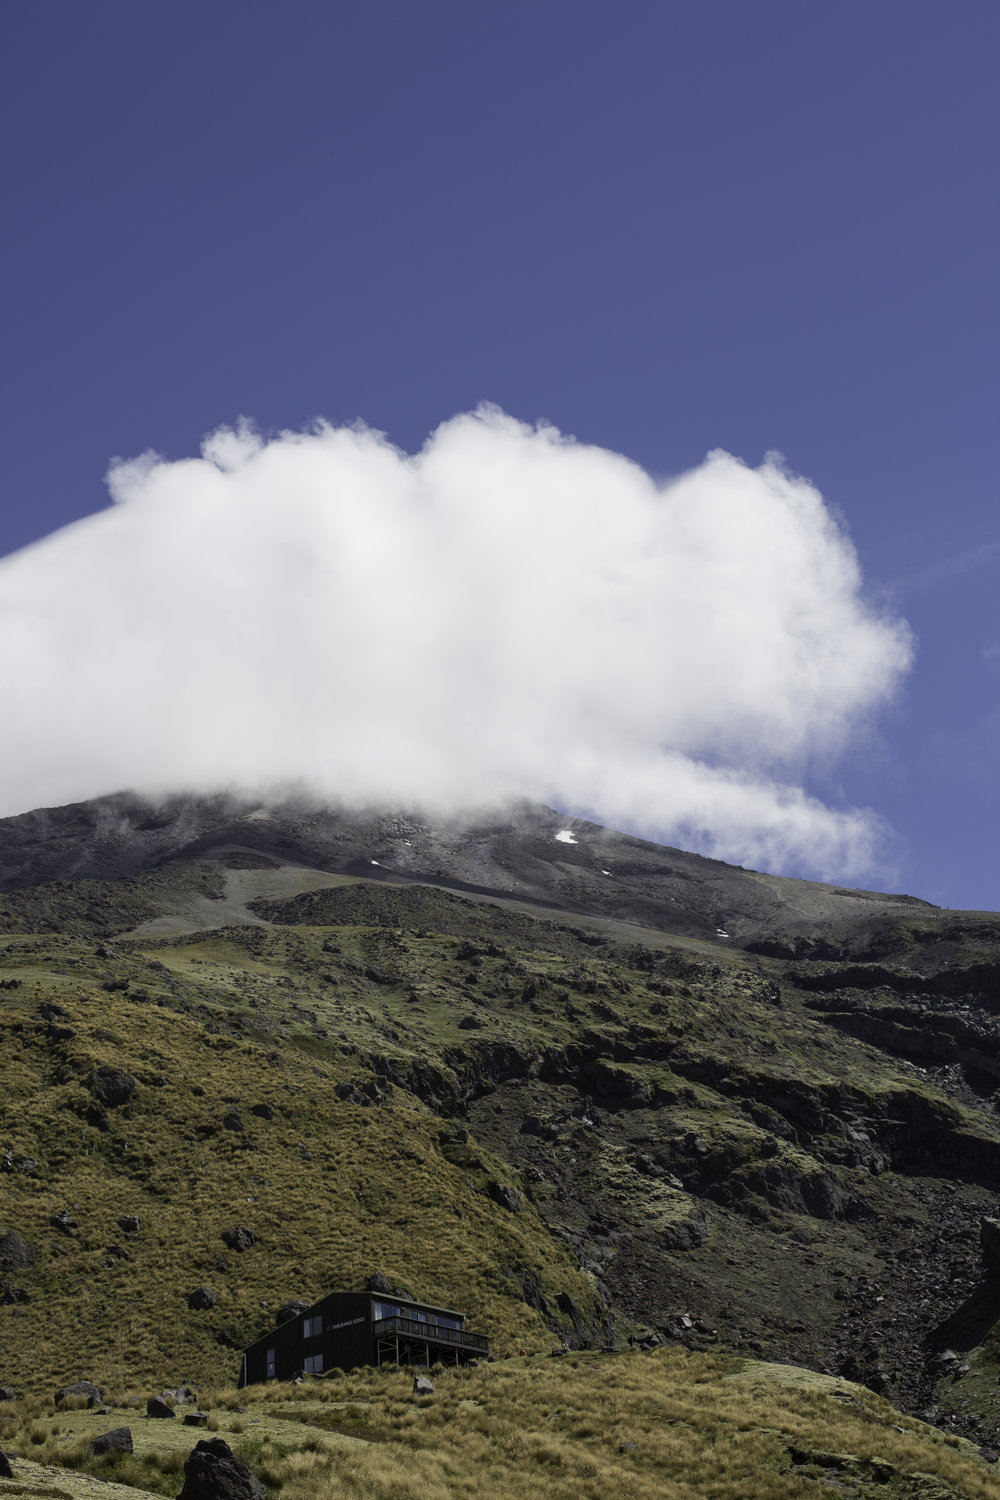 The hut mirrors the shape of the perlan clouds pouring over the top of Mt. Taranaki.